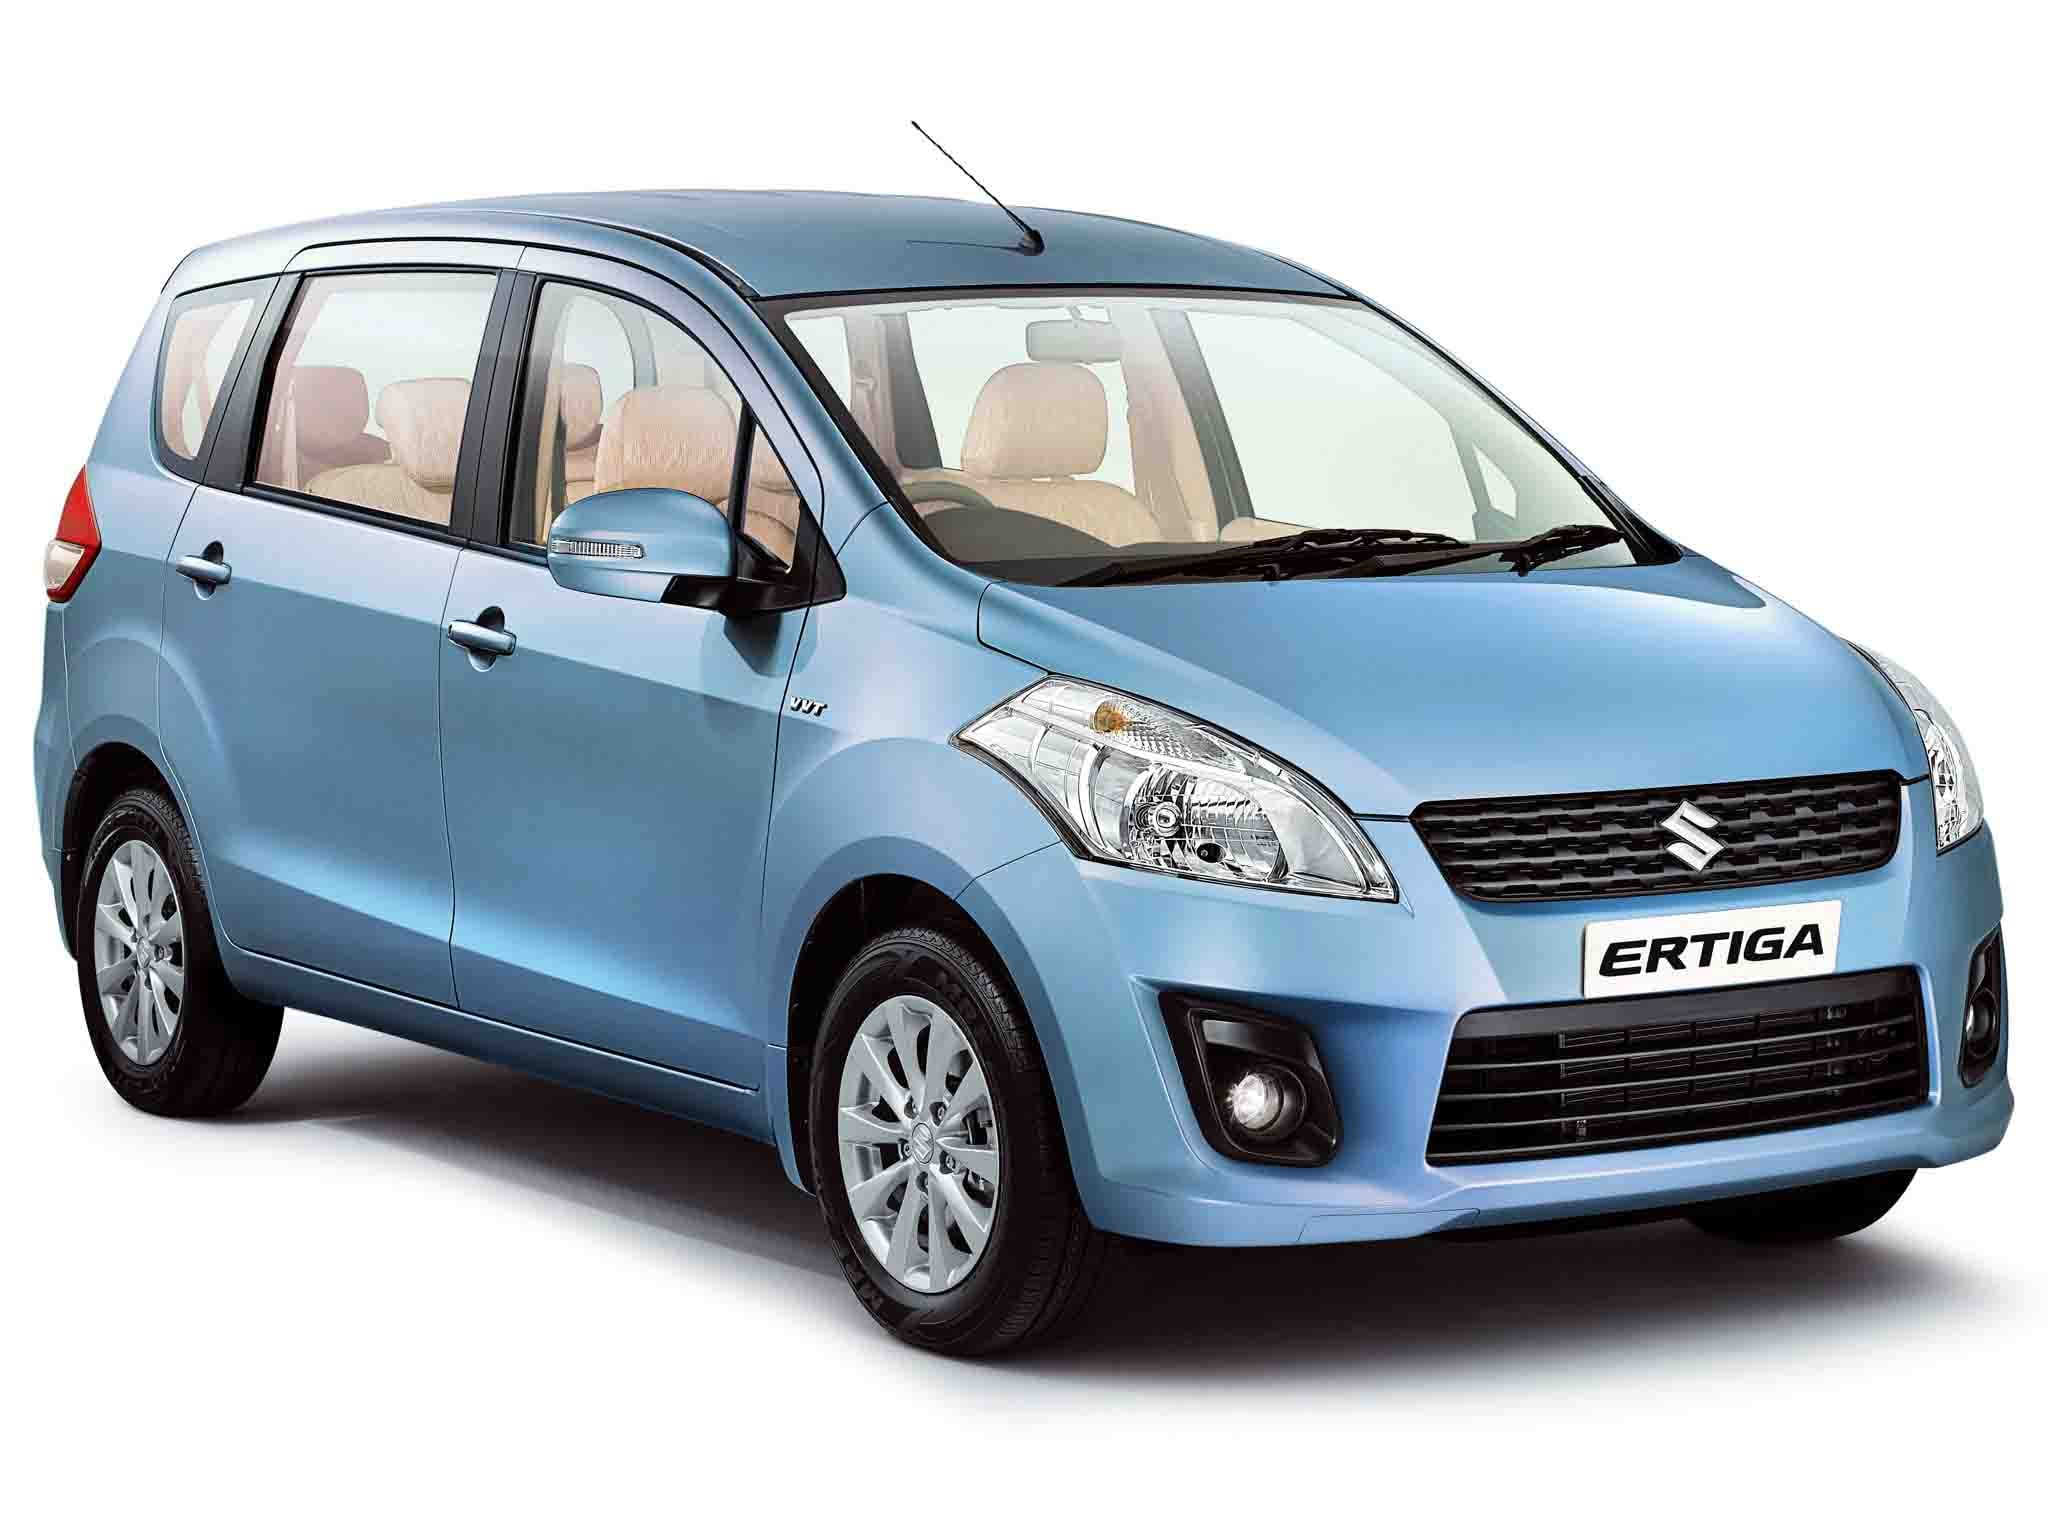 Best automatic diesel cars in india under 10 lakhs